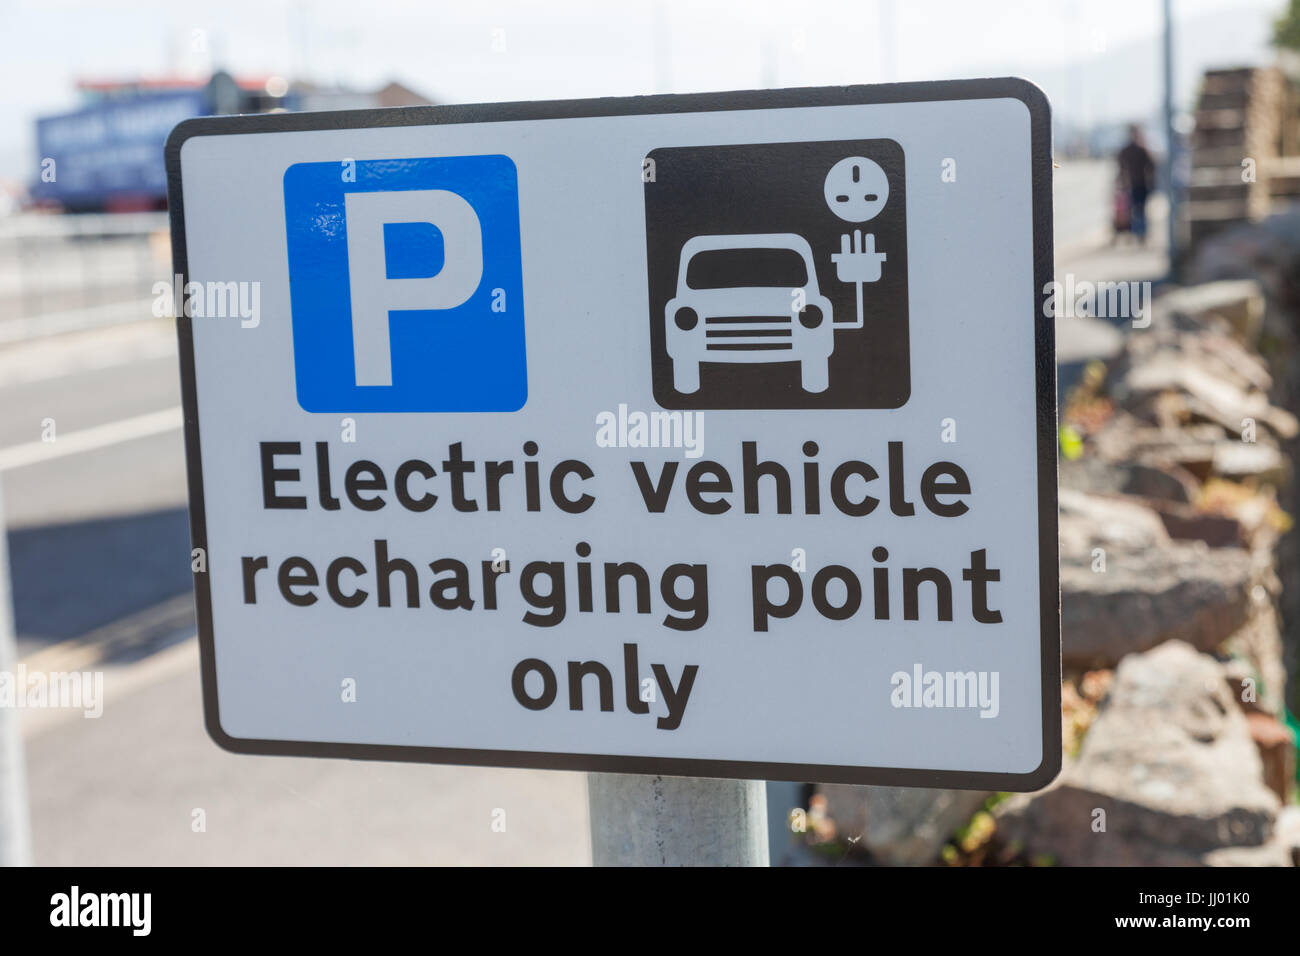 Sign for electric vehicle charging point parking - Stock Image